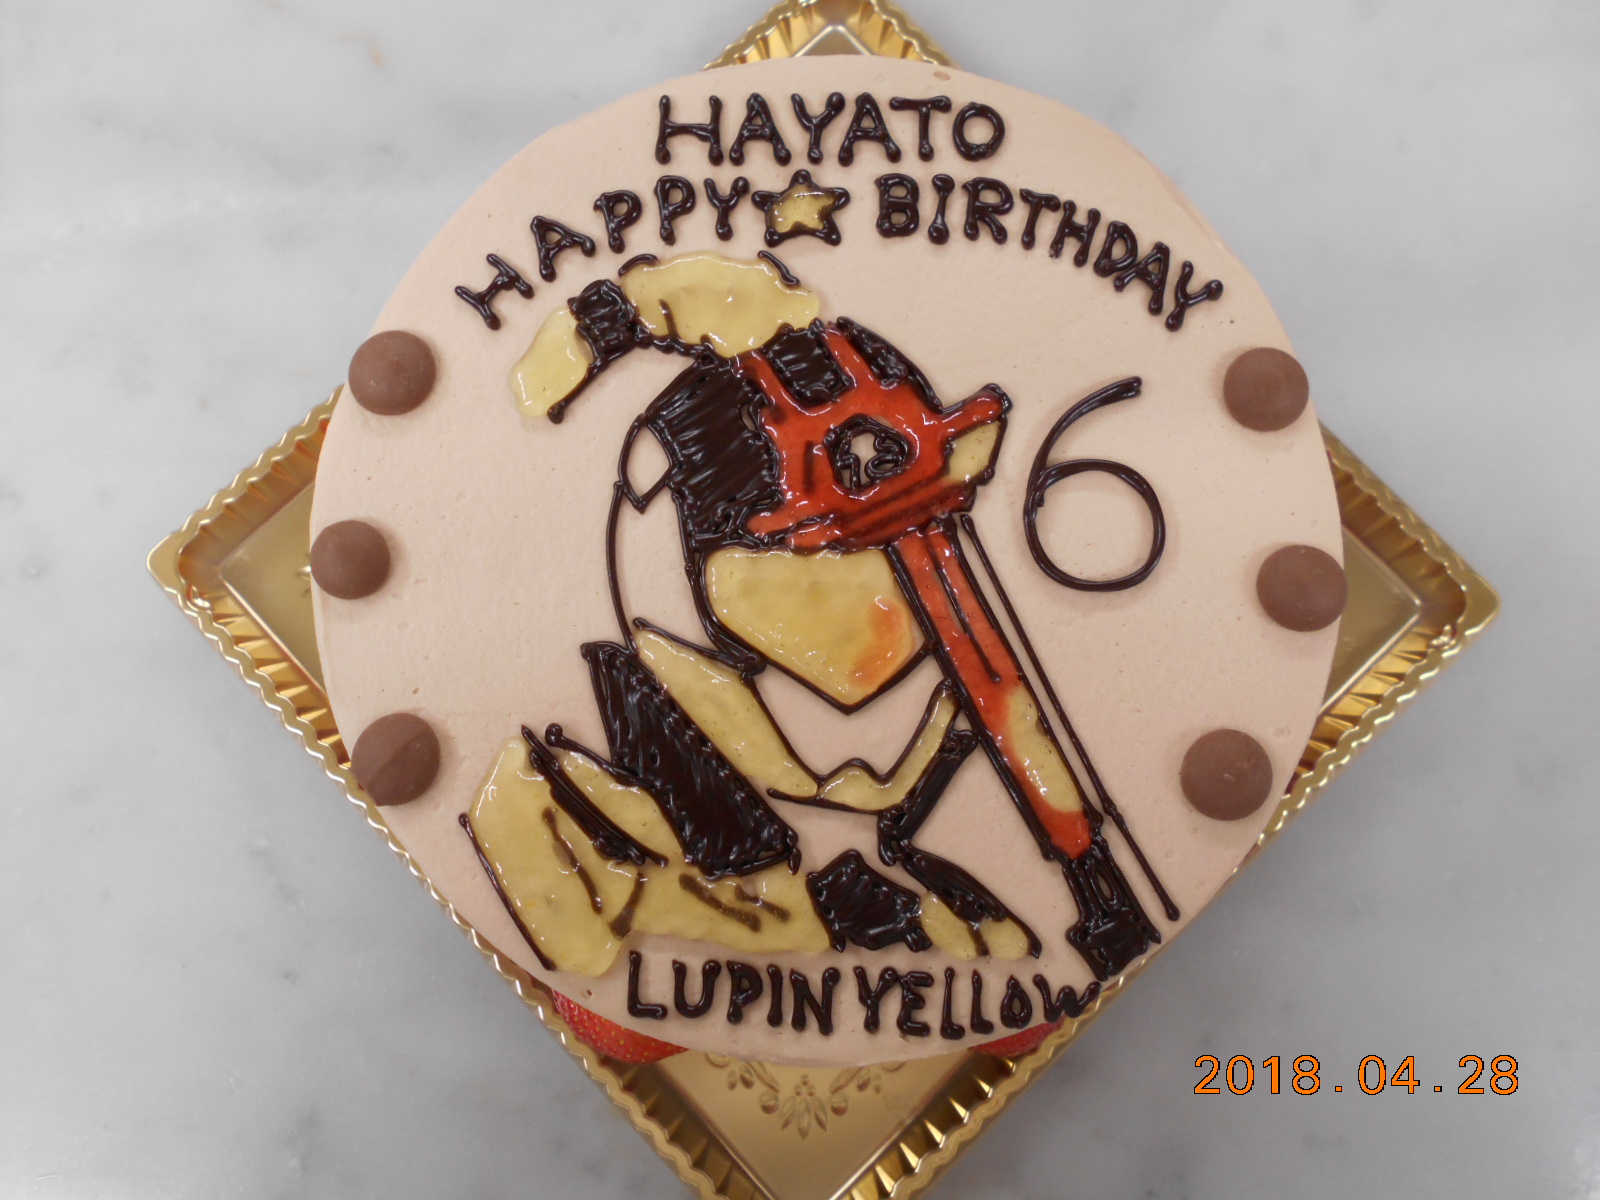 HAYATO HAPPY BIRTHDAY